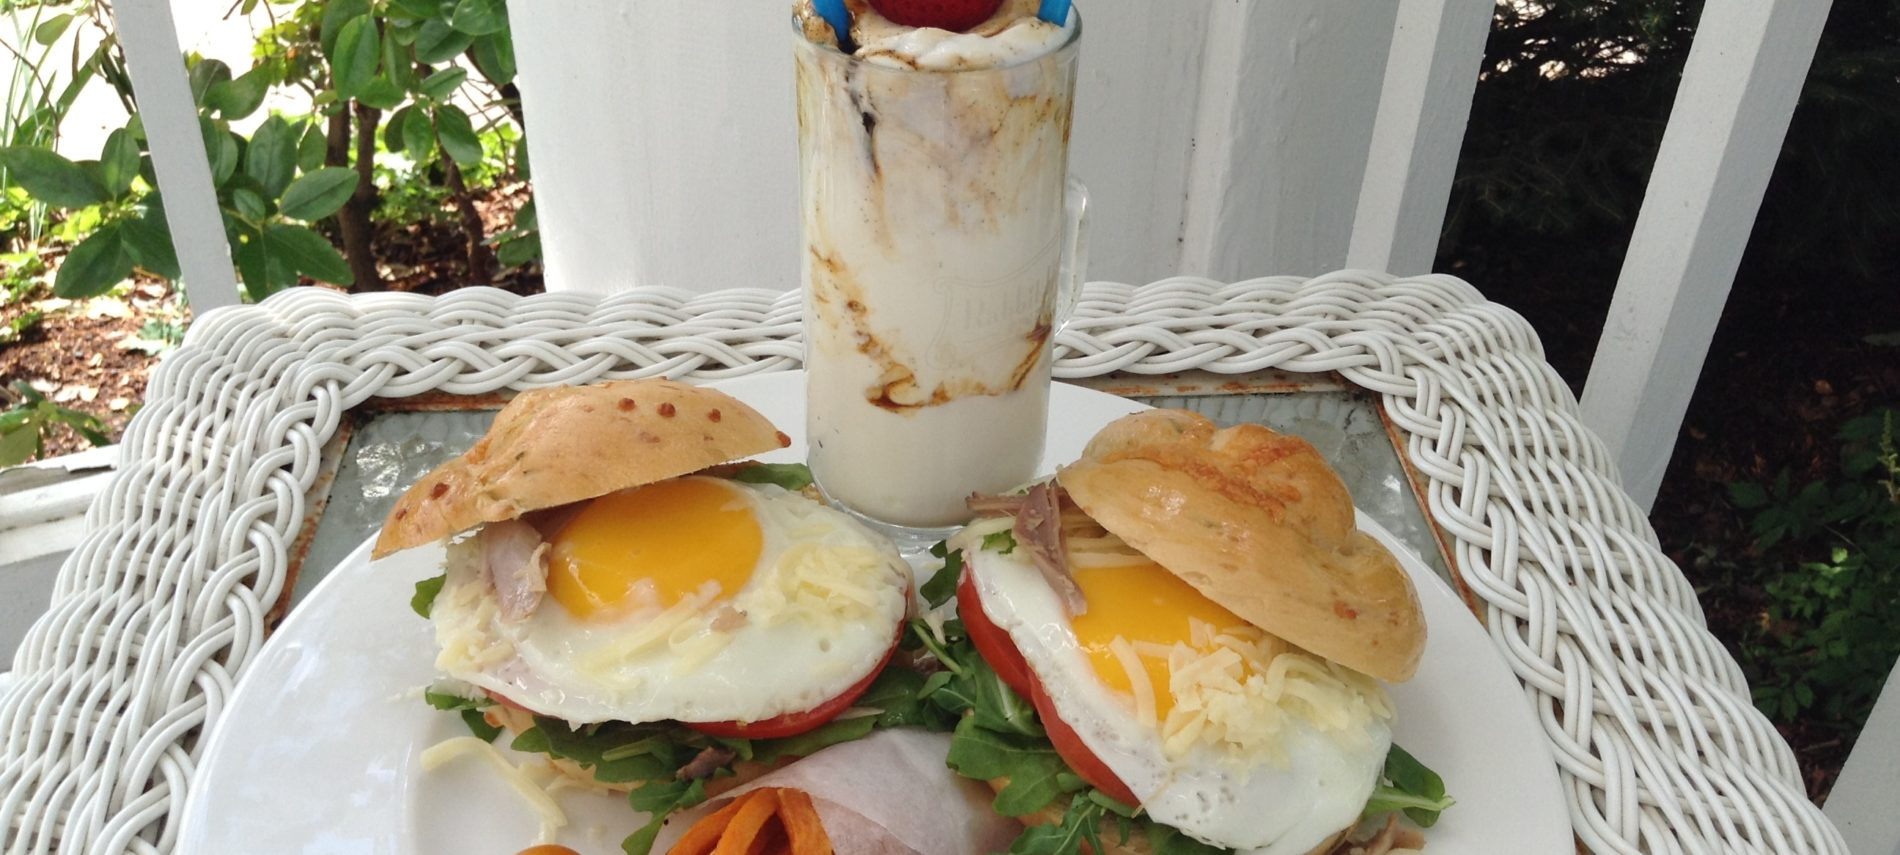 Rabbit Hill Inn's retro breakfast